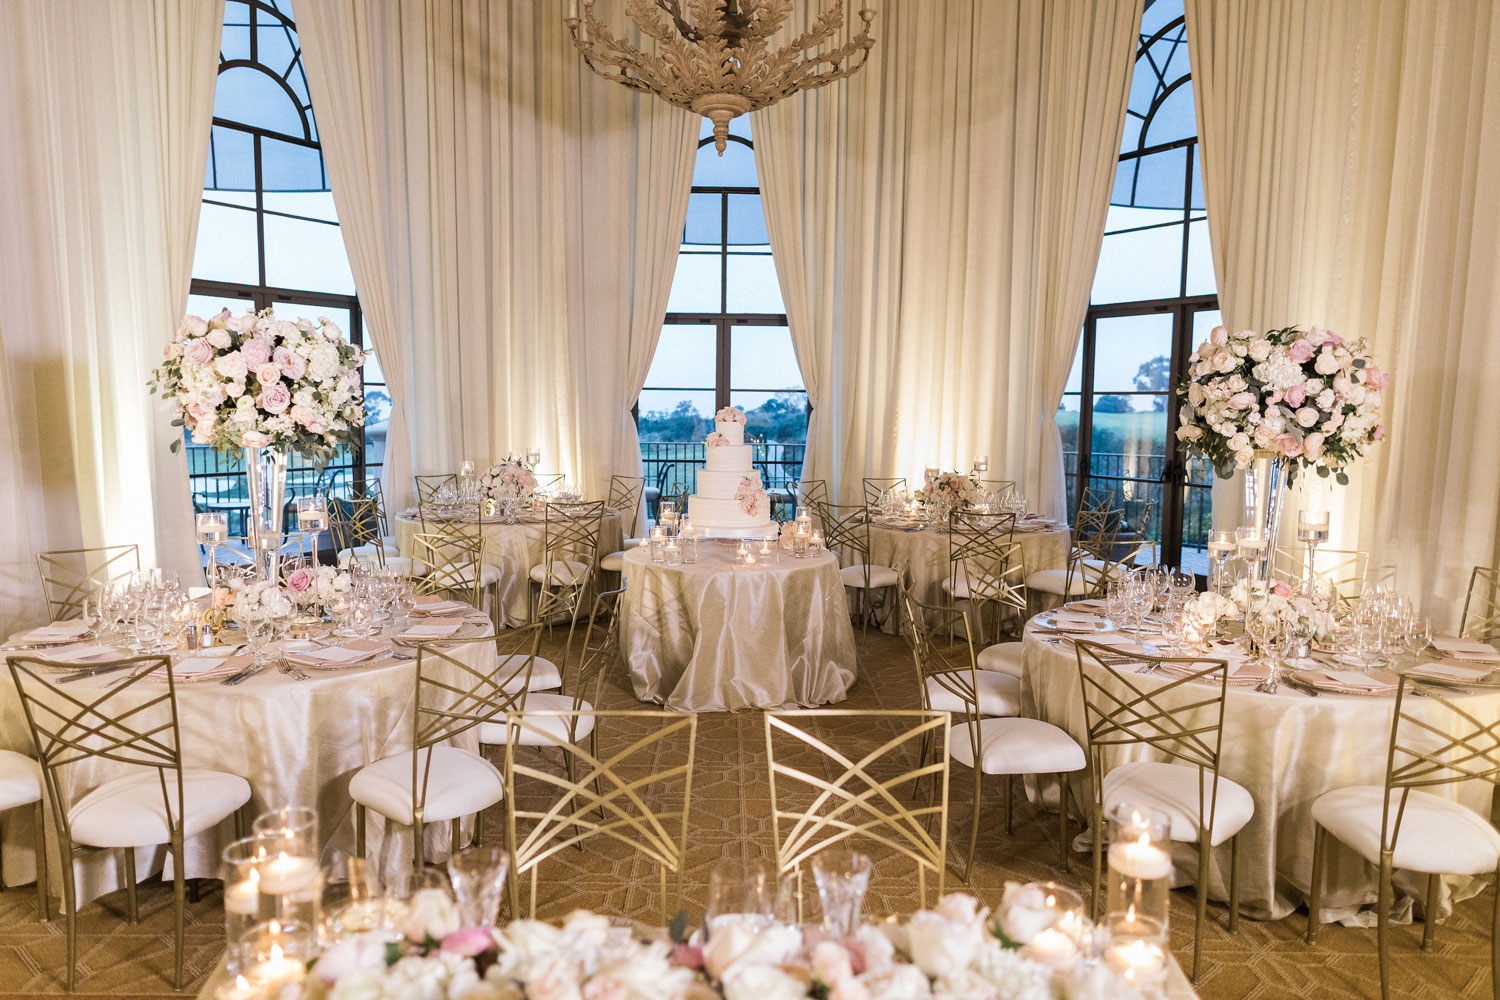 ballroom wedding ceremony with white and gold reception chairs chameleon chair collection